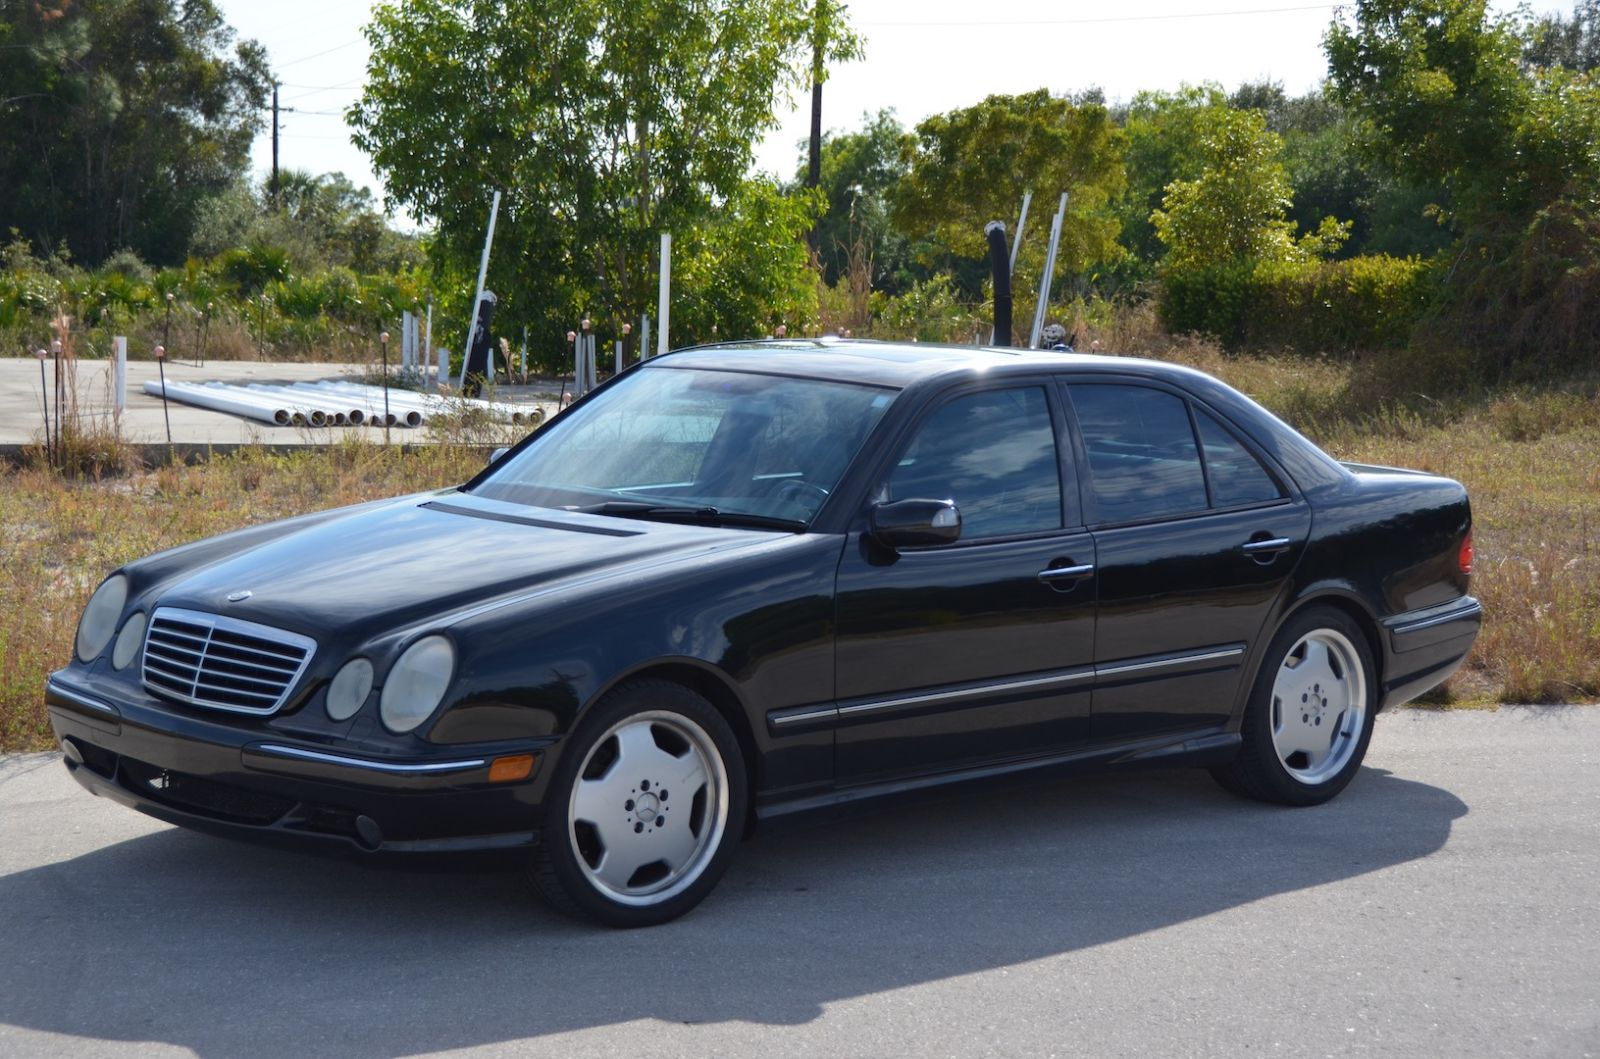 2000 Mercedes Benz E55 Amg Information And Photos